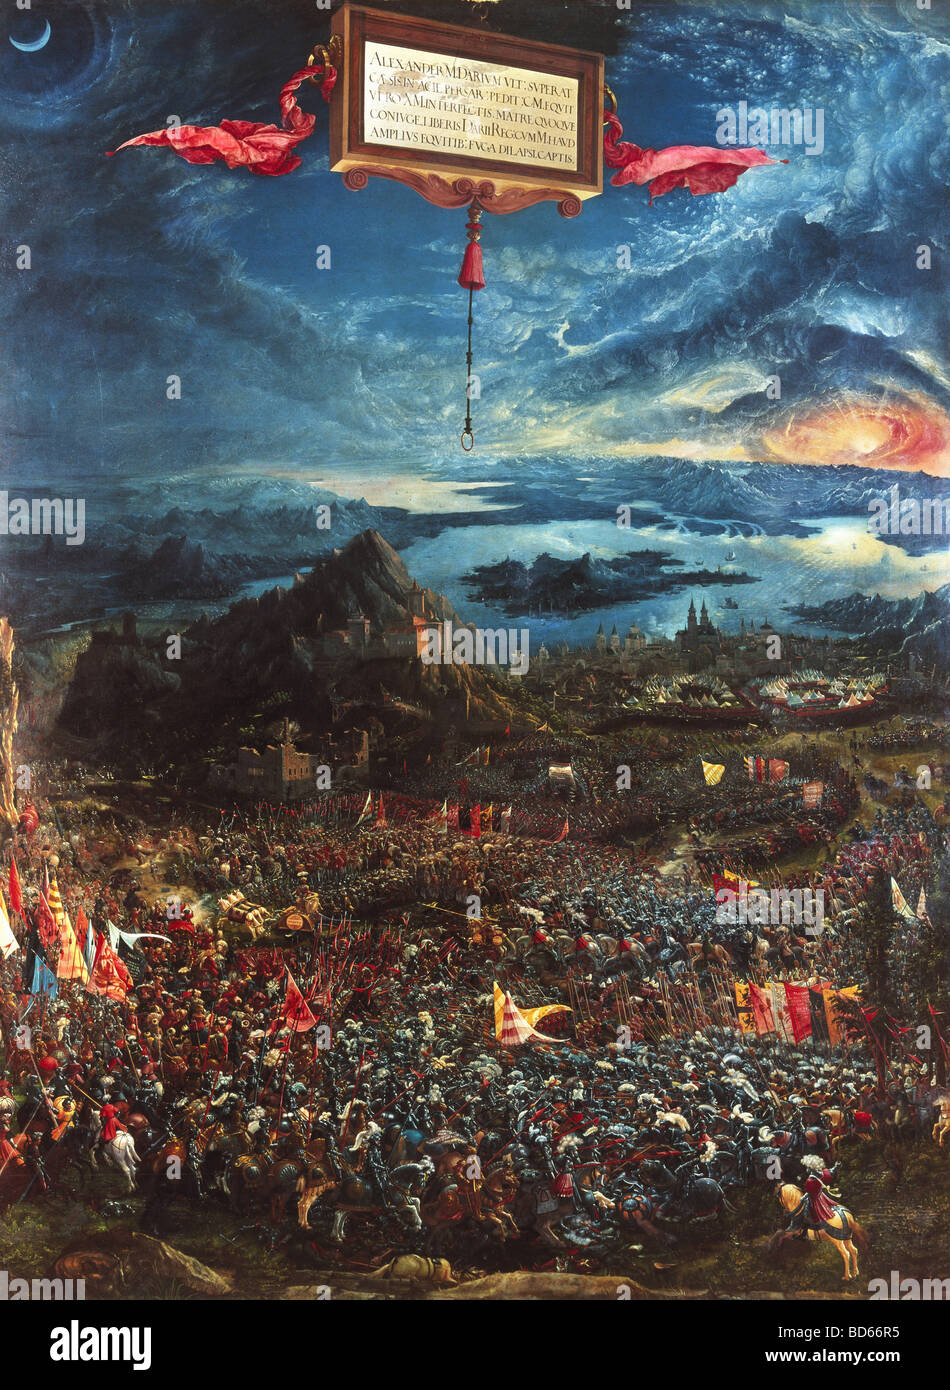 "fine arts, Altdorfer, Albrecht (1480 - 1538), painting ""Alexanderschlacht"", (Battle of Alexander the Great), 1529, Stock Photo"